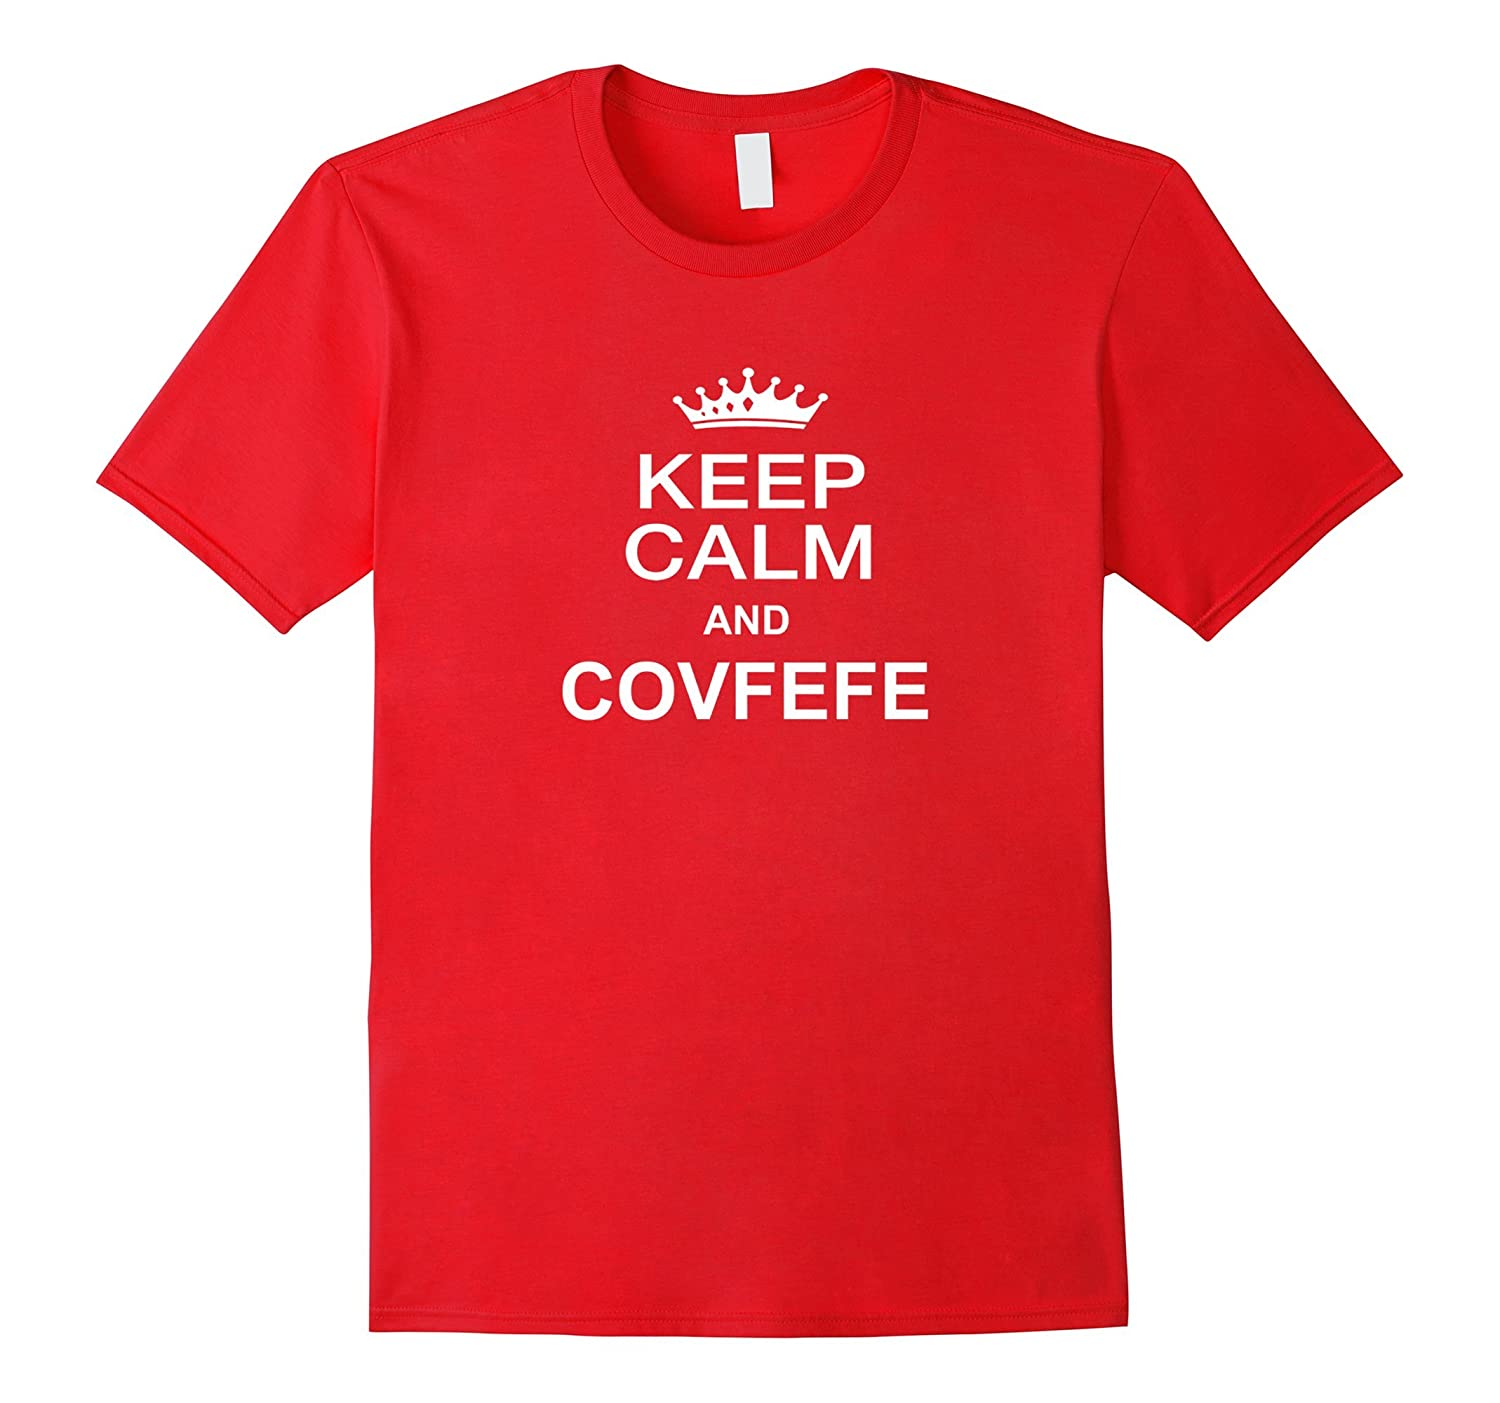 Keep Calm And Covfefe T-shirt Cool Fashion Casual Top Tee-TH